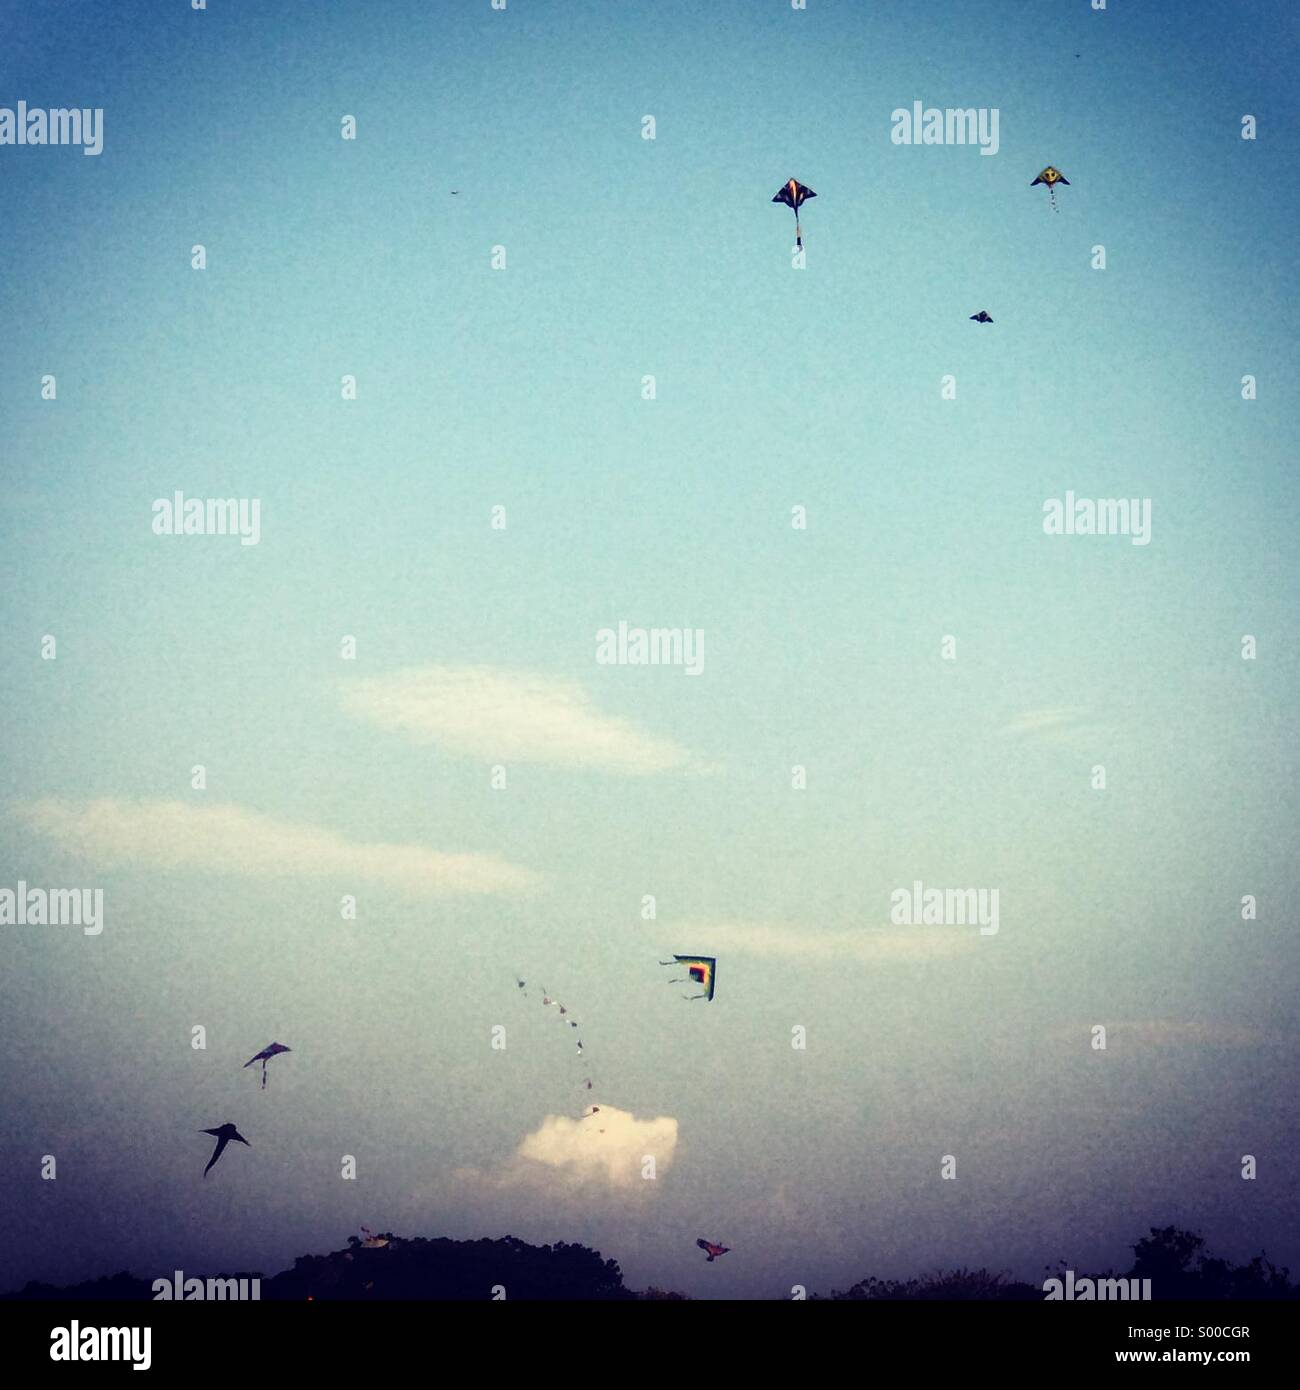 Kites in the sky - Stock Image